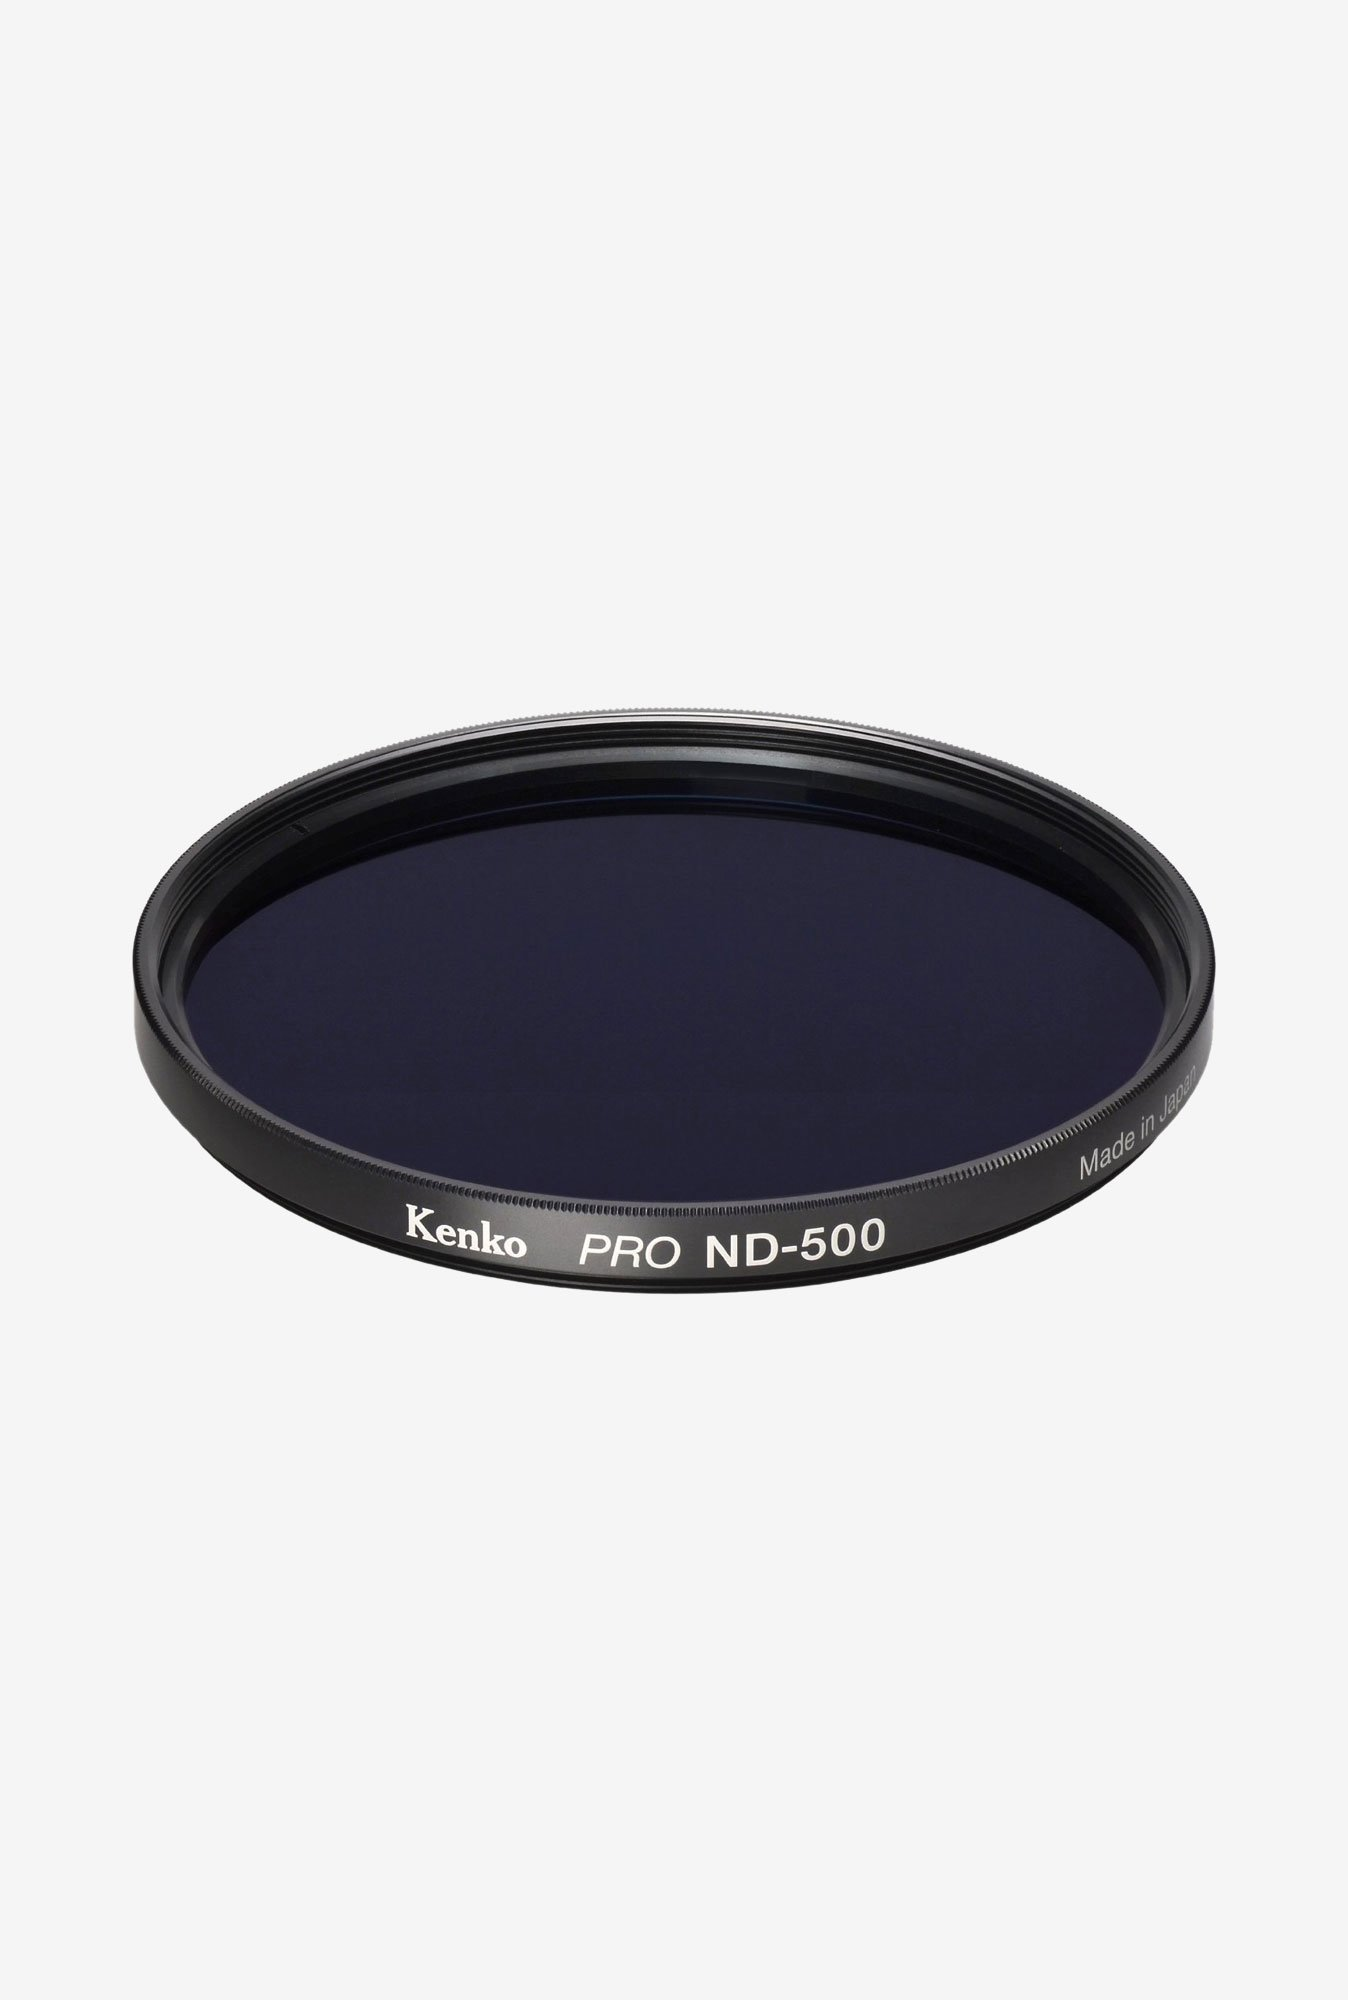 Kenko 72mm Pro ND500 Multicoated Camera Lens Filter (Black)